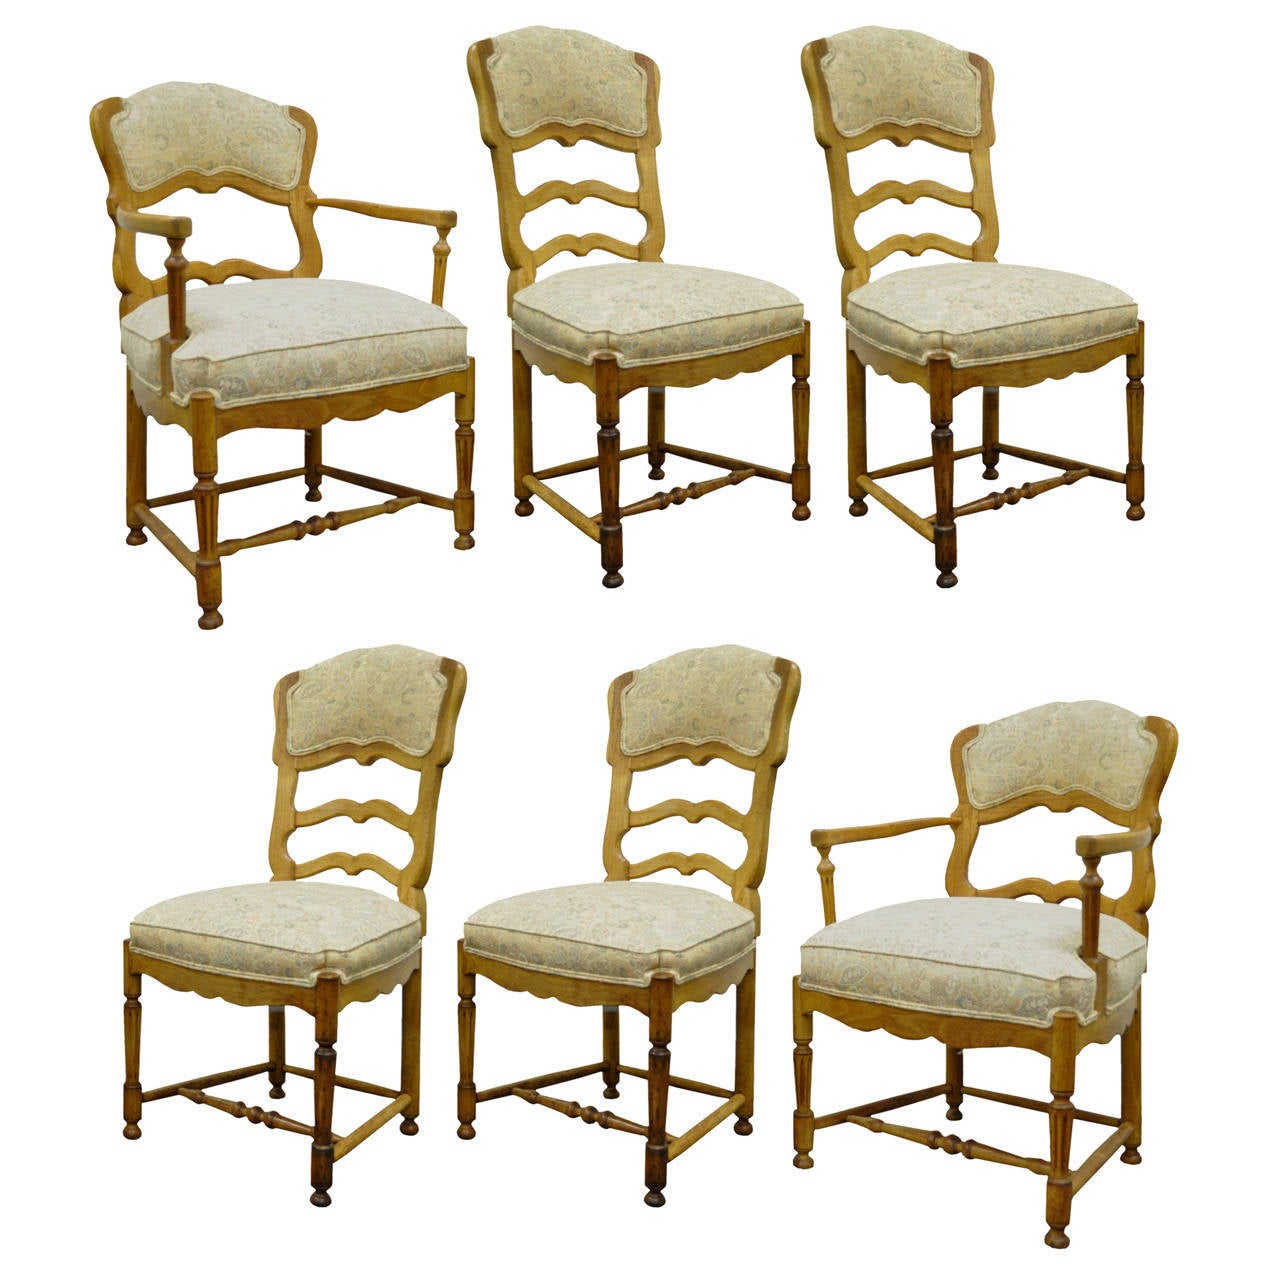 country french chairs upholstered office dublin six style carved and ladder